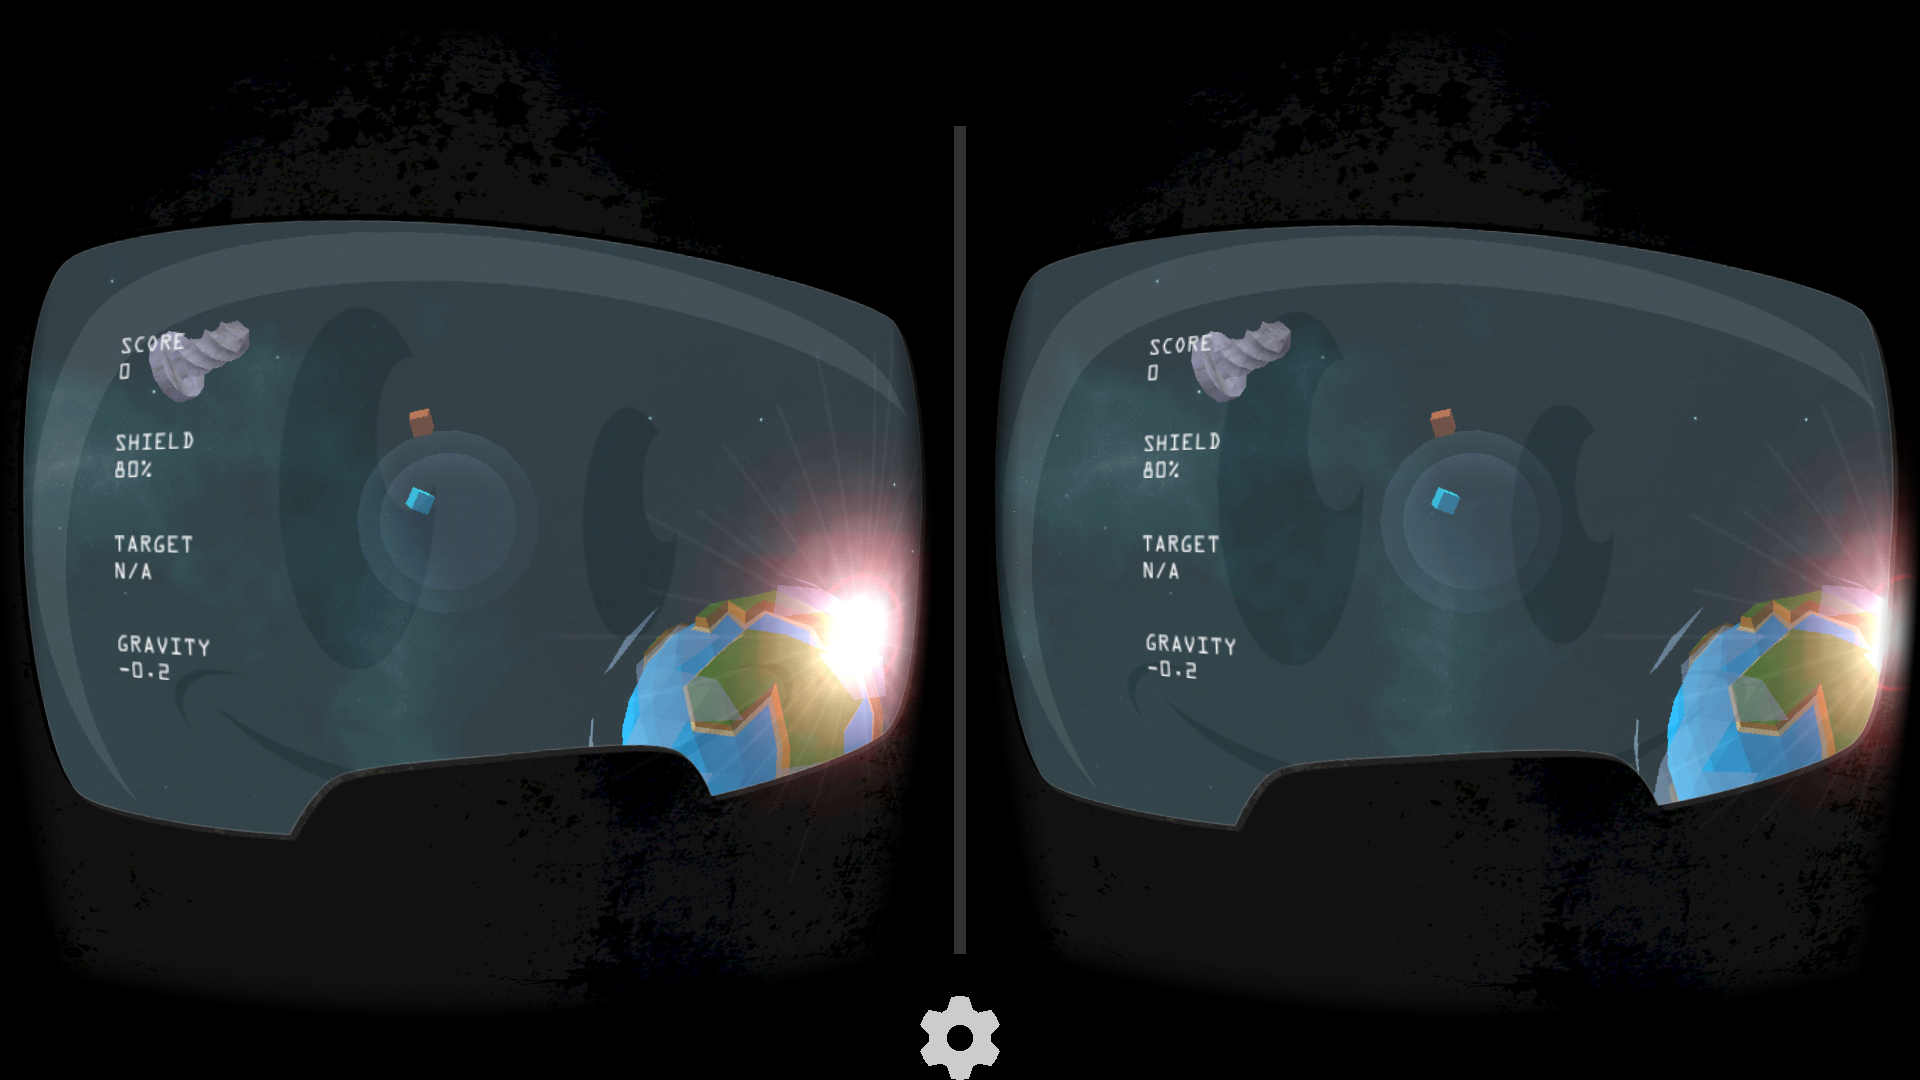 WAA! VR / When Asteroids attack!